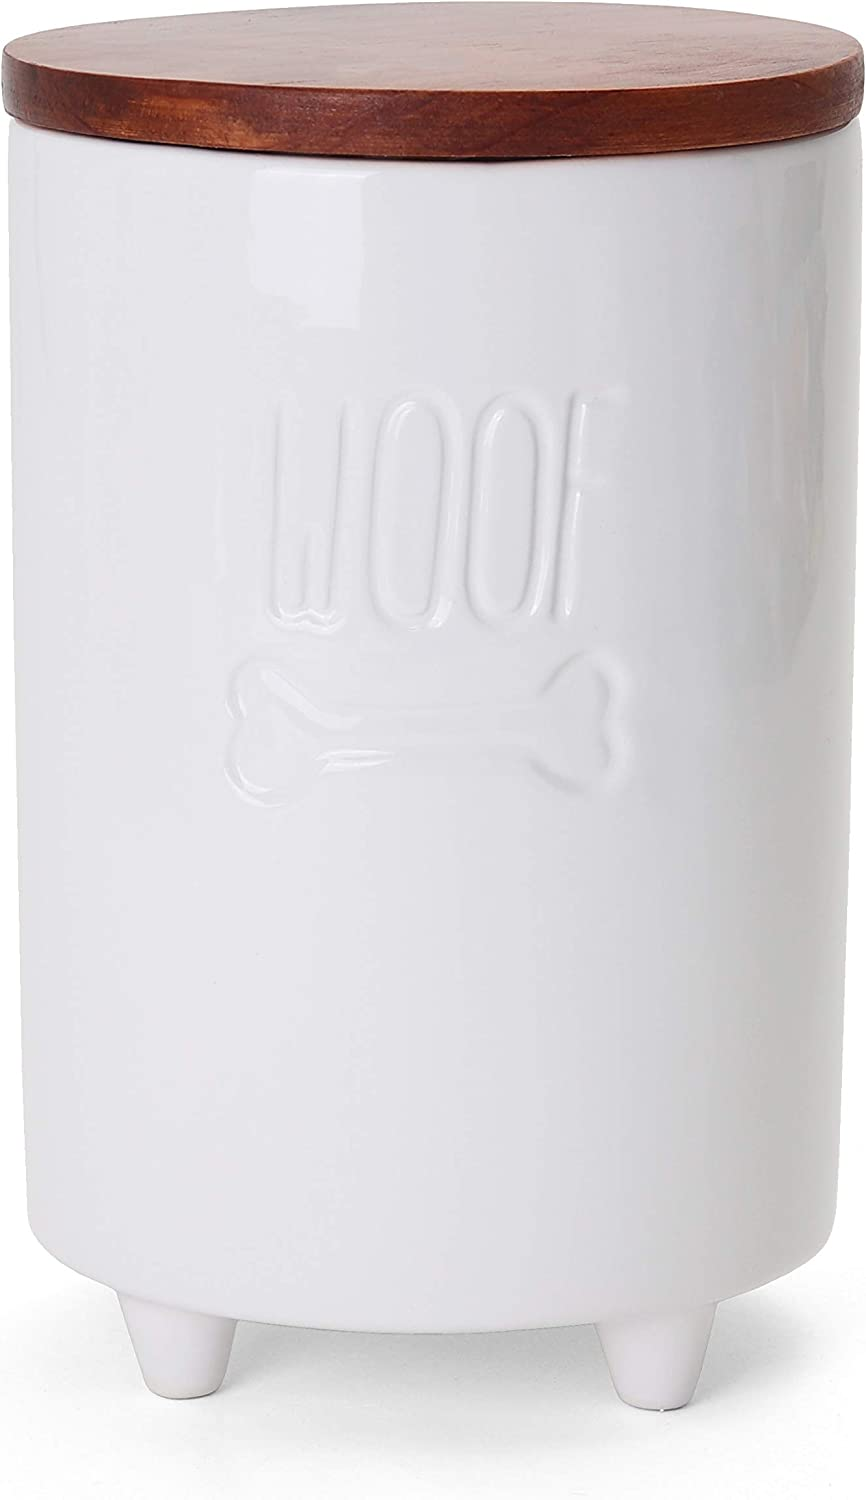 Directly managed store Milltown service Merchants Dog Treat Jar w - D Lid Container